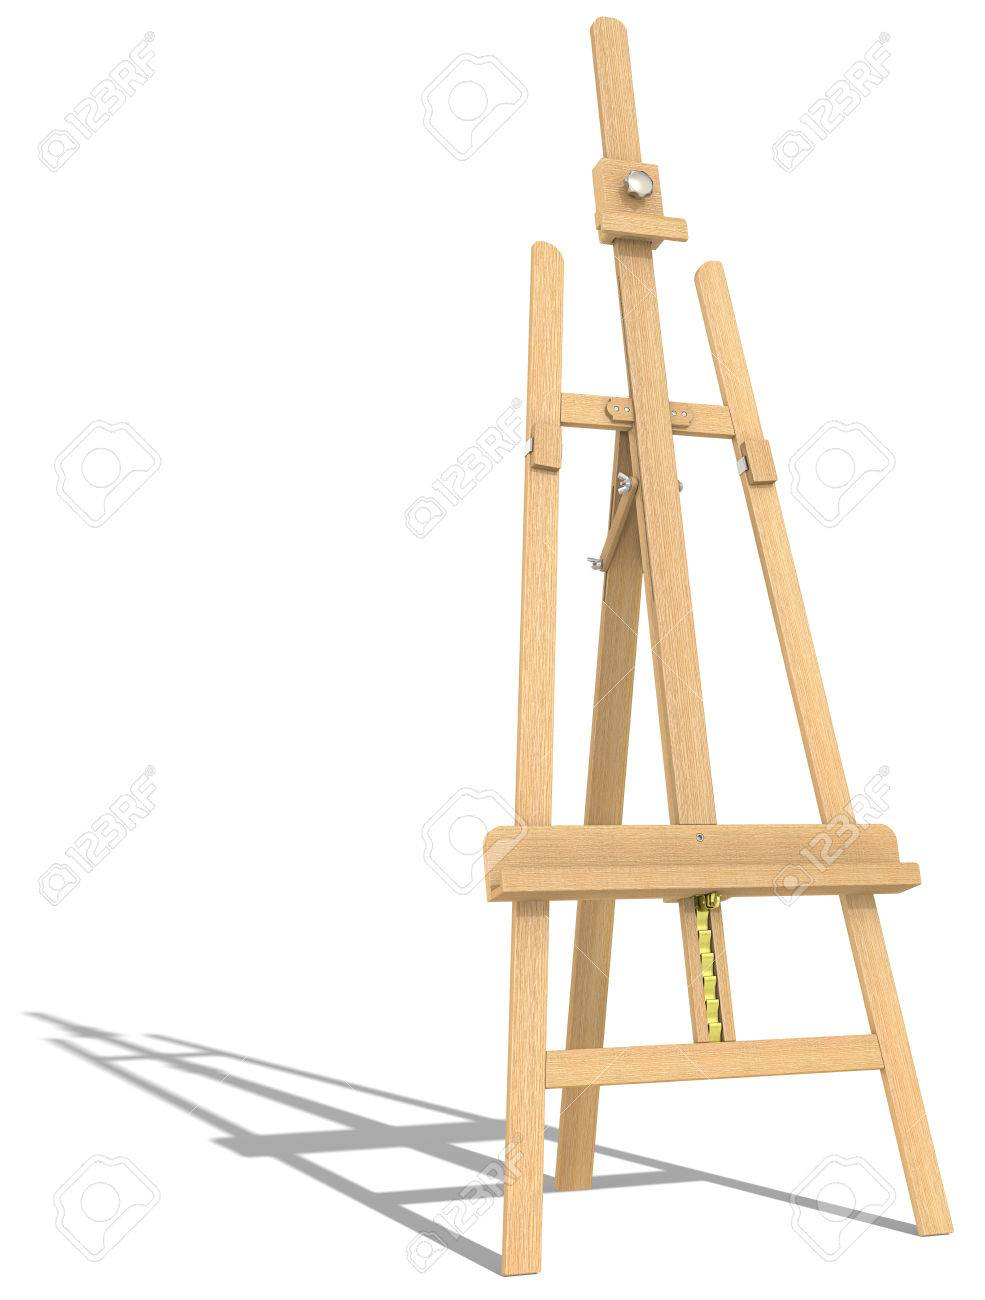 Side View Of An Easel Hard Shadow Stock Photo Picture And Royalty